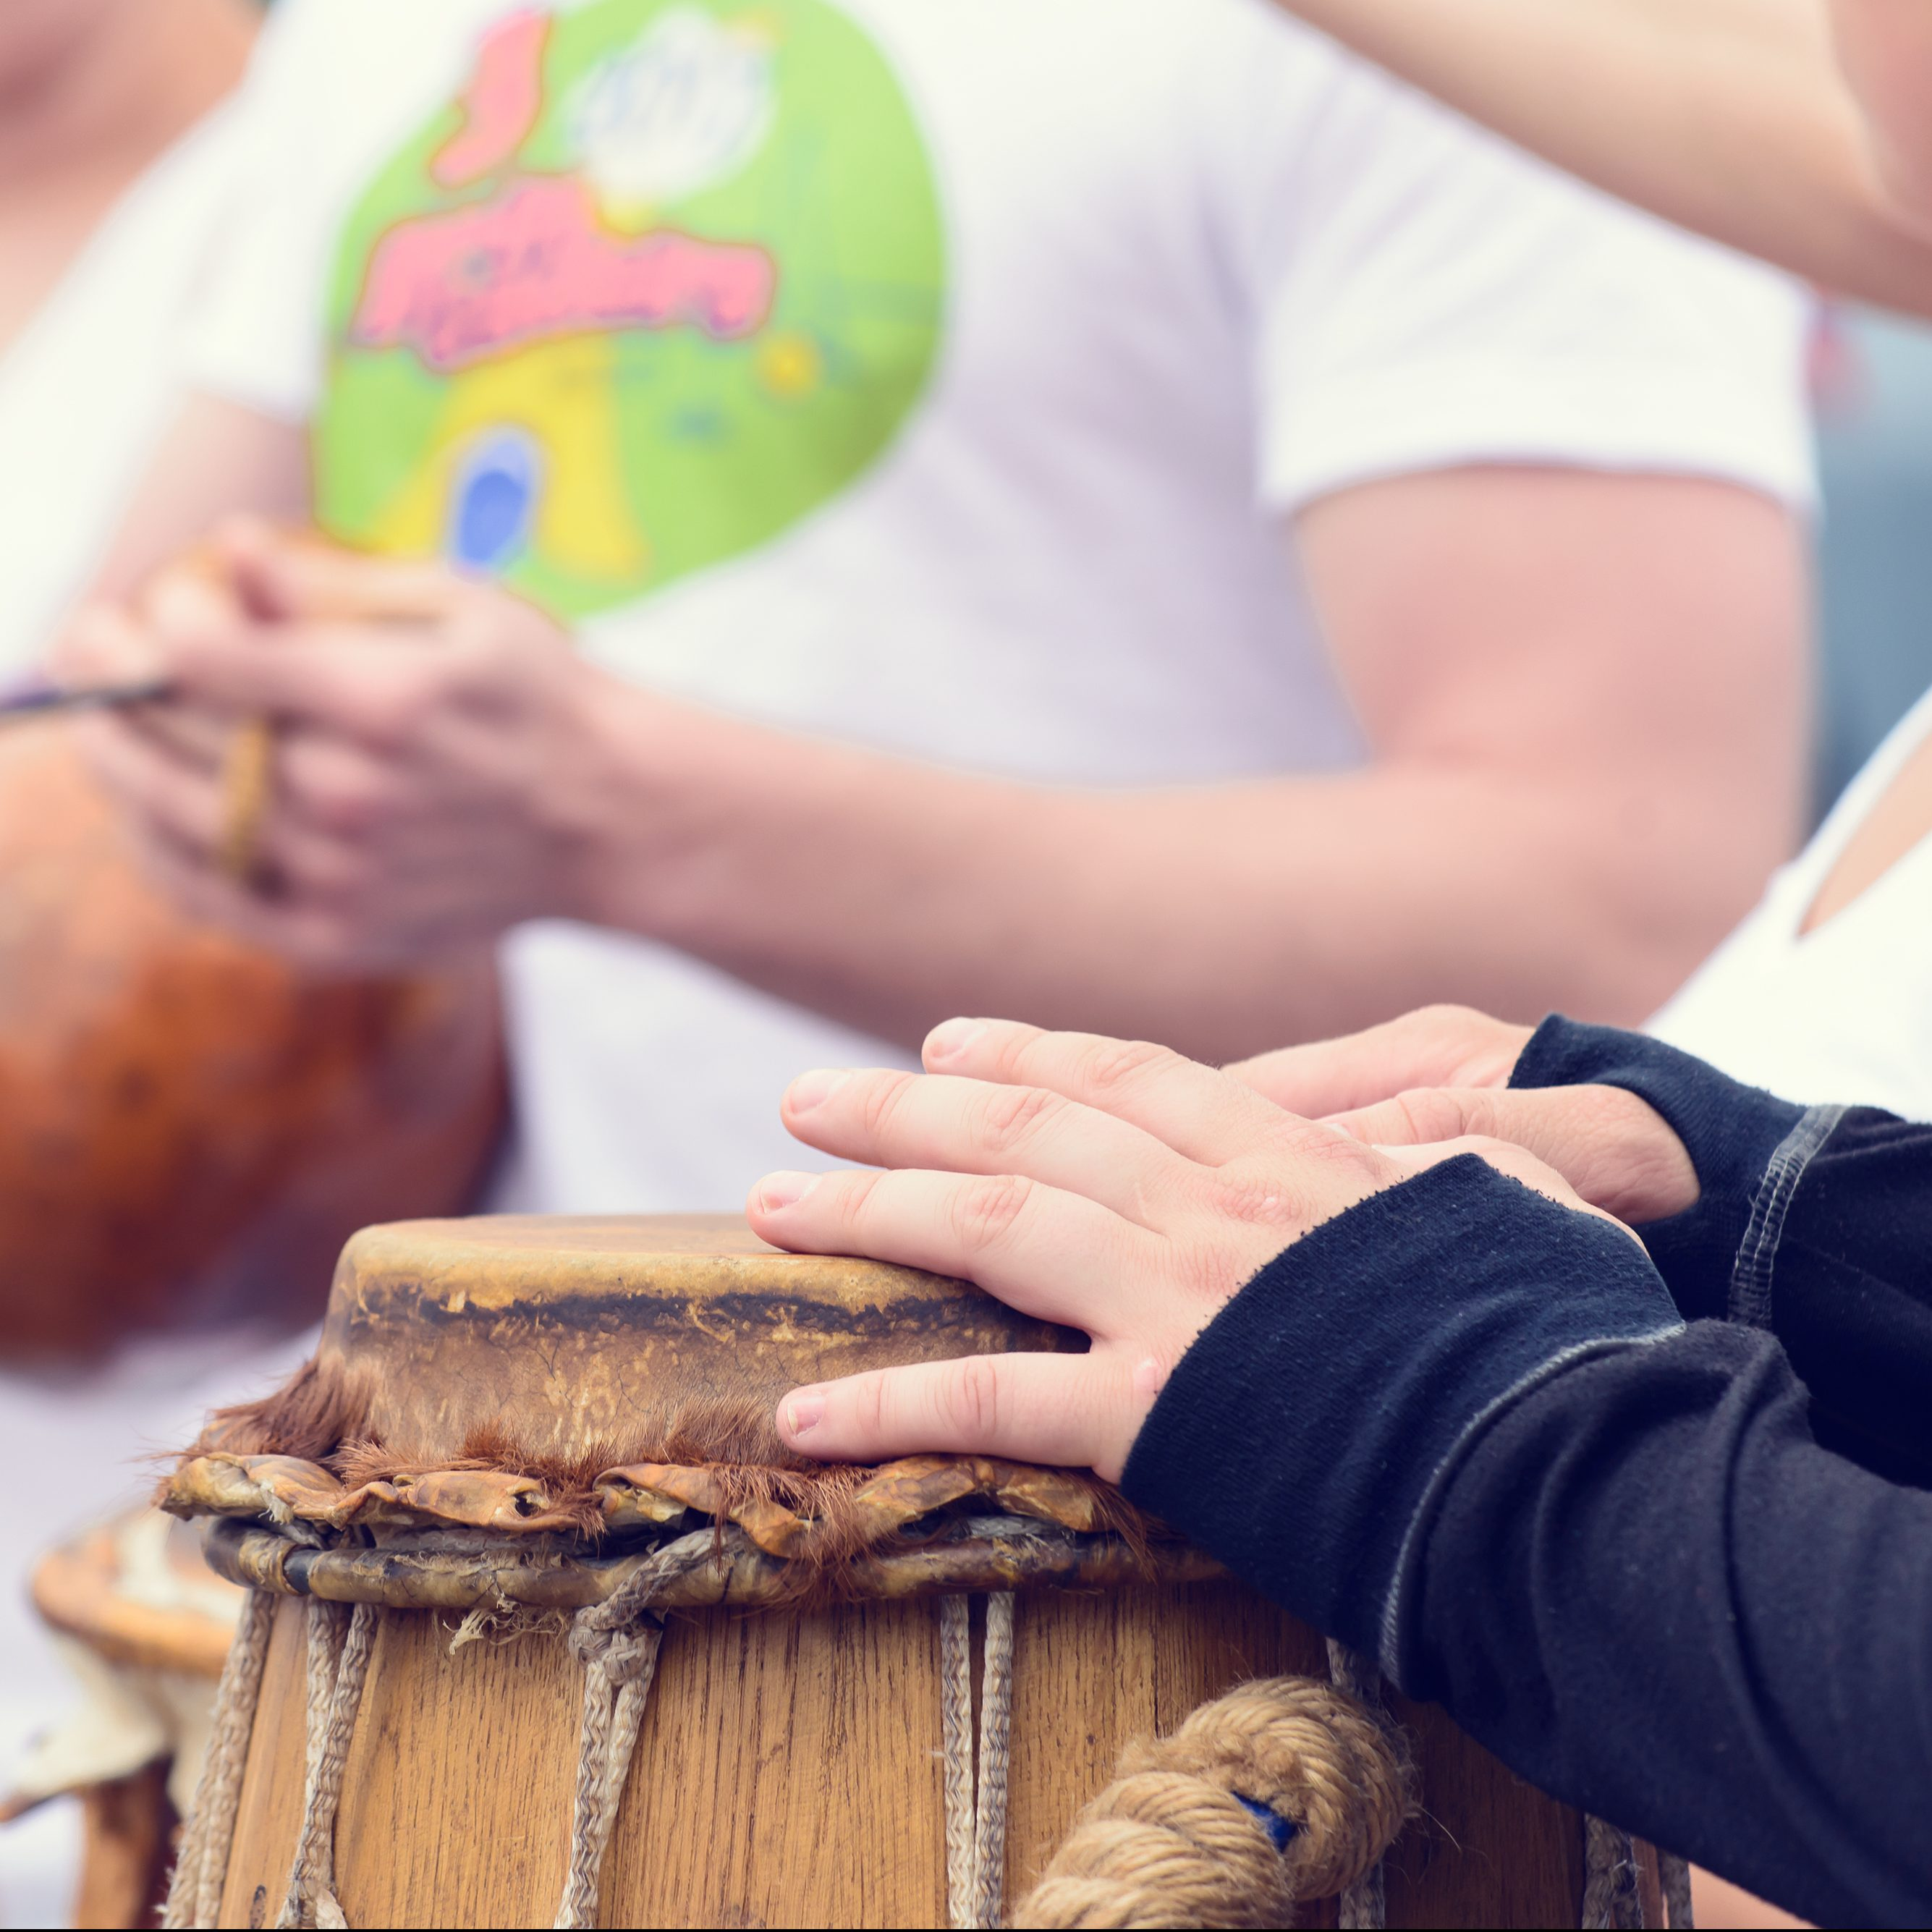 drummer with traditional Brazilian Drum and drum sticks, selecti